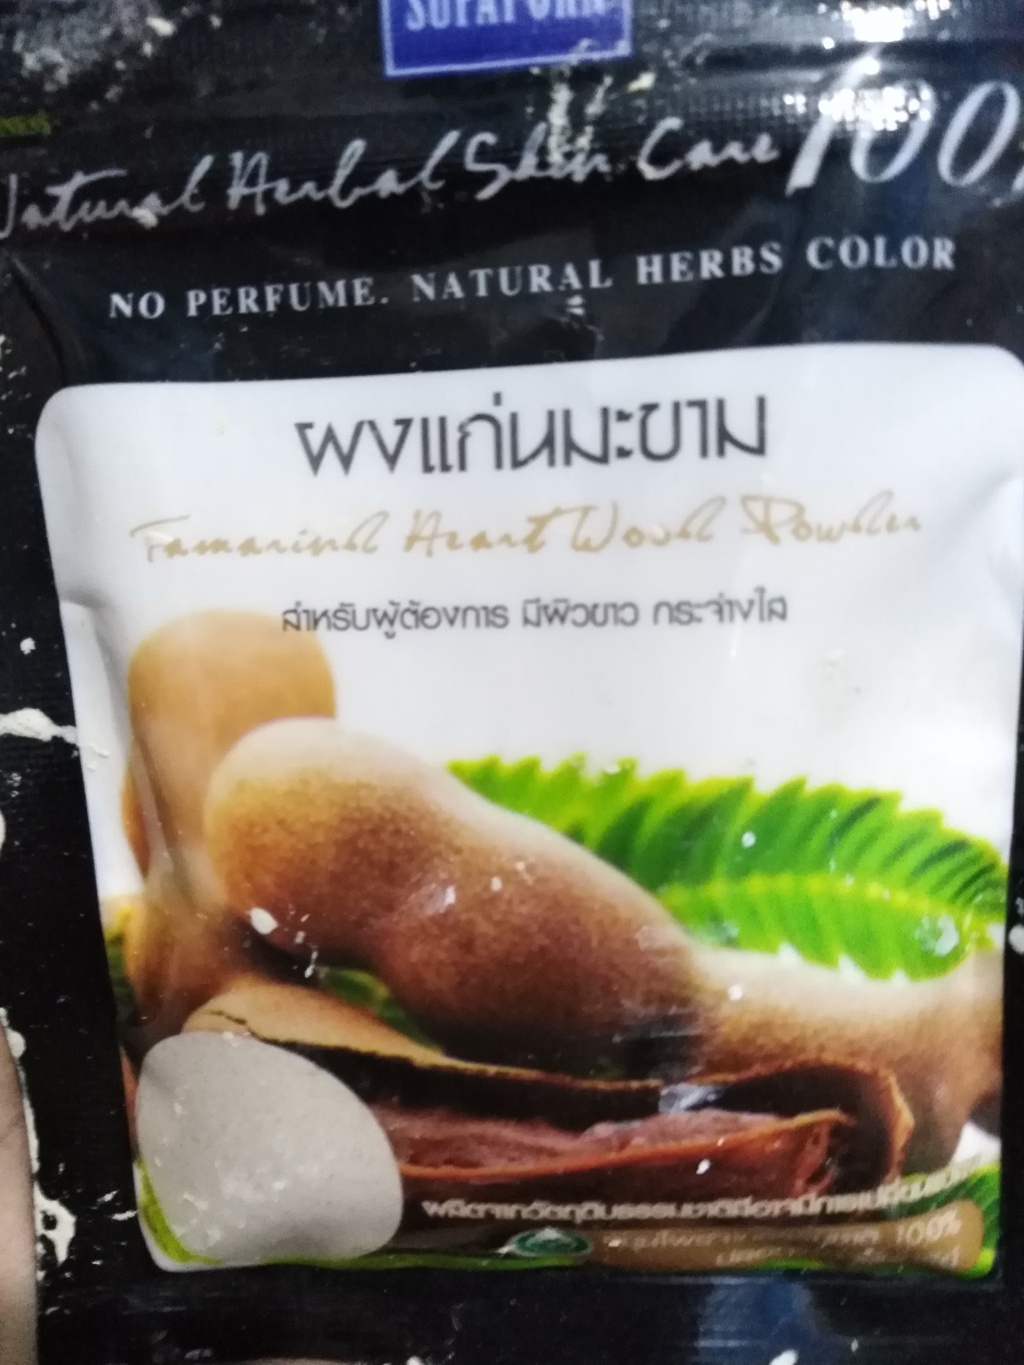 SUPAPORN Tamarind Heart Wood Powder